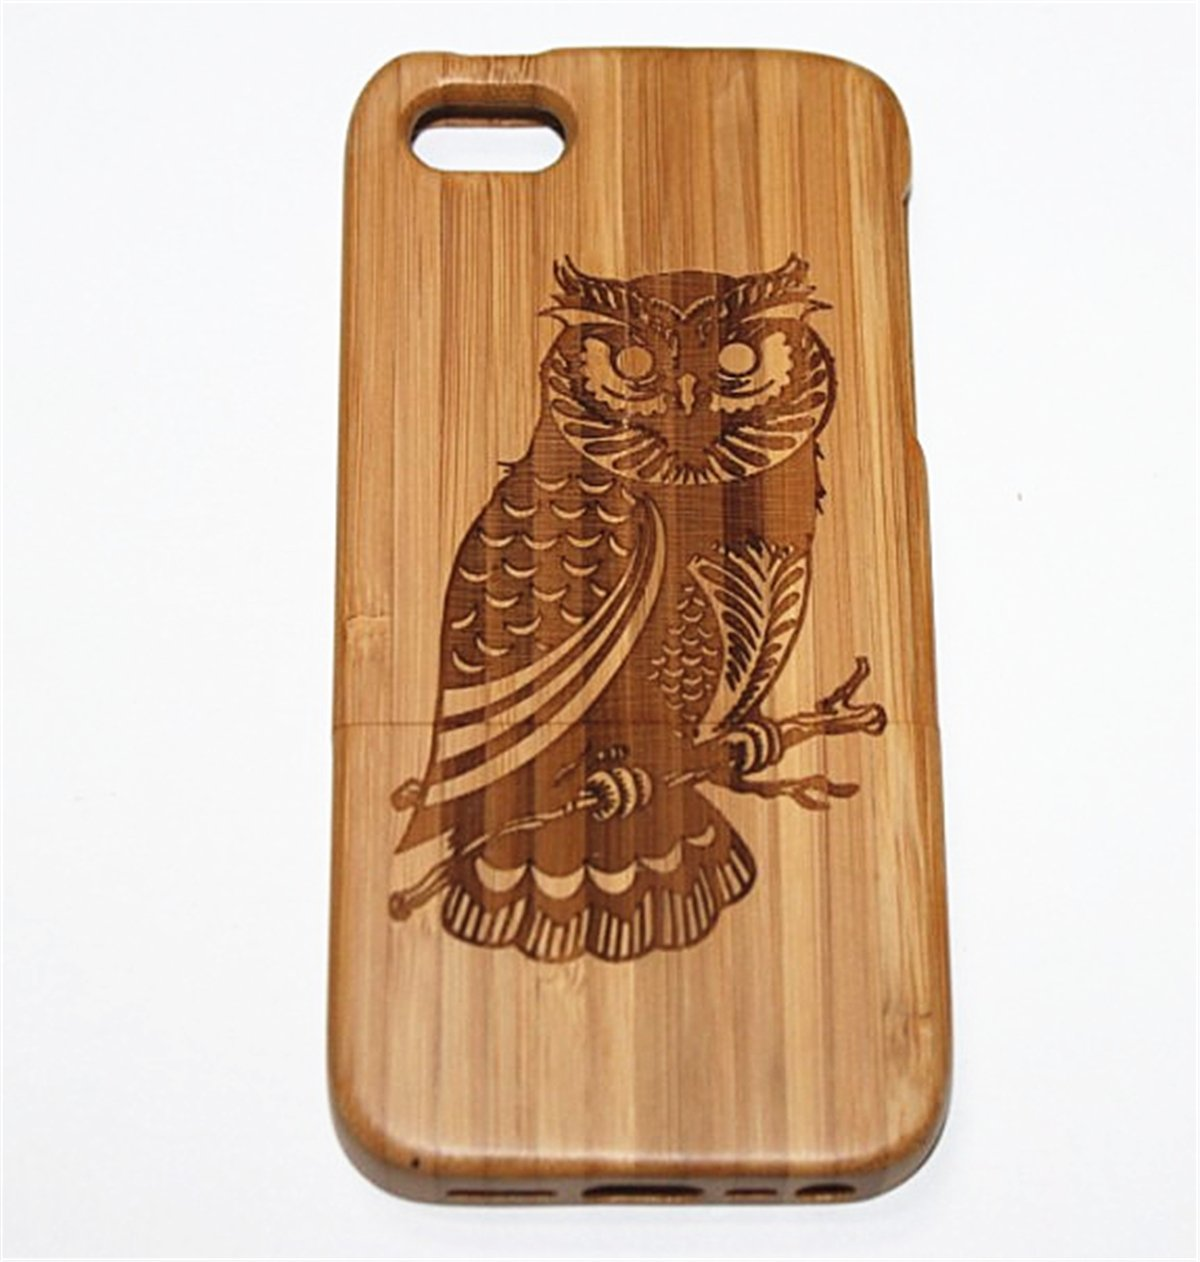 iPhone 4S Case, Firefish Hand-made Real Wood Case Cove Scratch & Shock Resistance?Eco-Friendly &Durable Material For iPhone 4S ( With A Stylus) -Owl